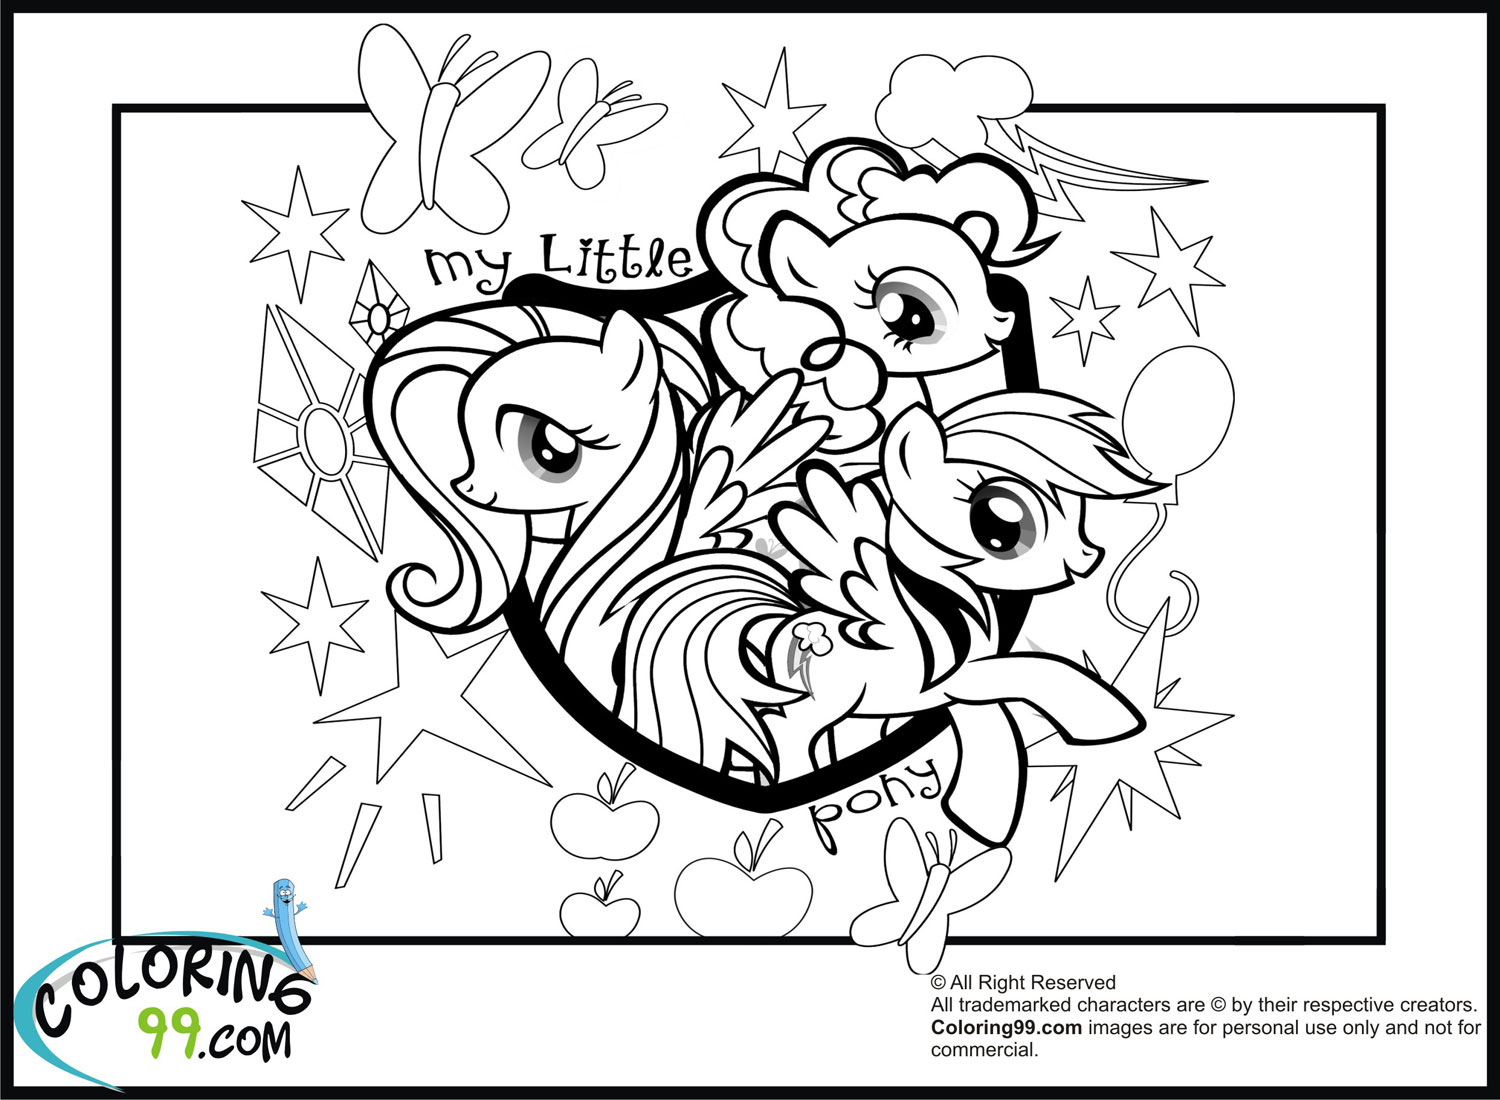 Coloring Pages My Little Pony Friendship Is Magic My Pony Equestria Coloring Pages To Print Free